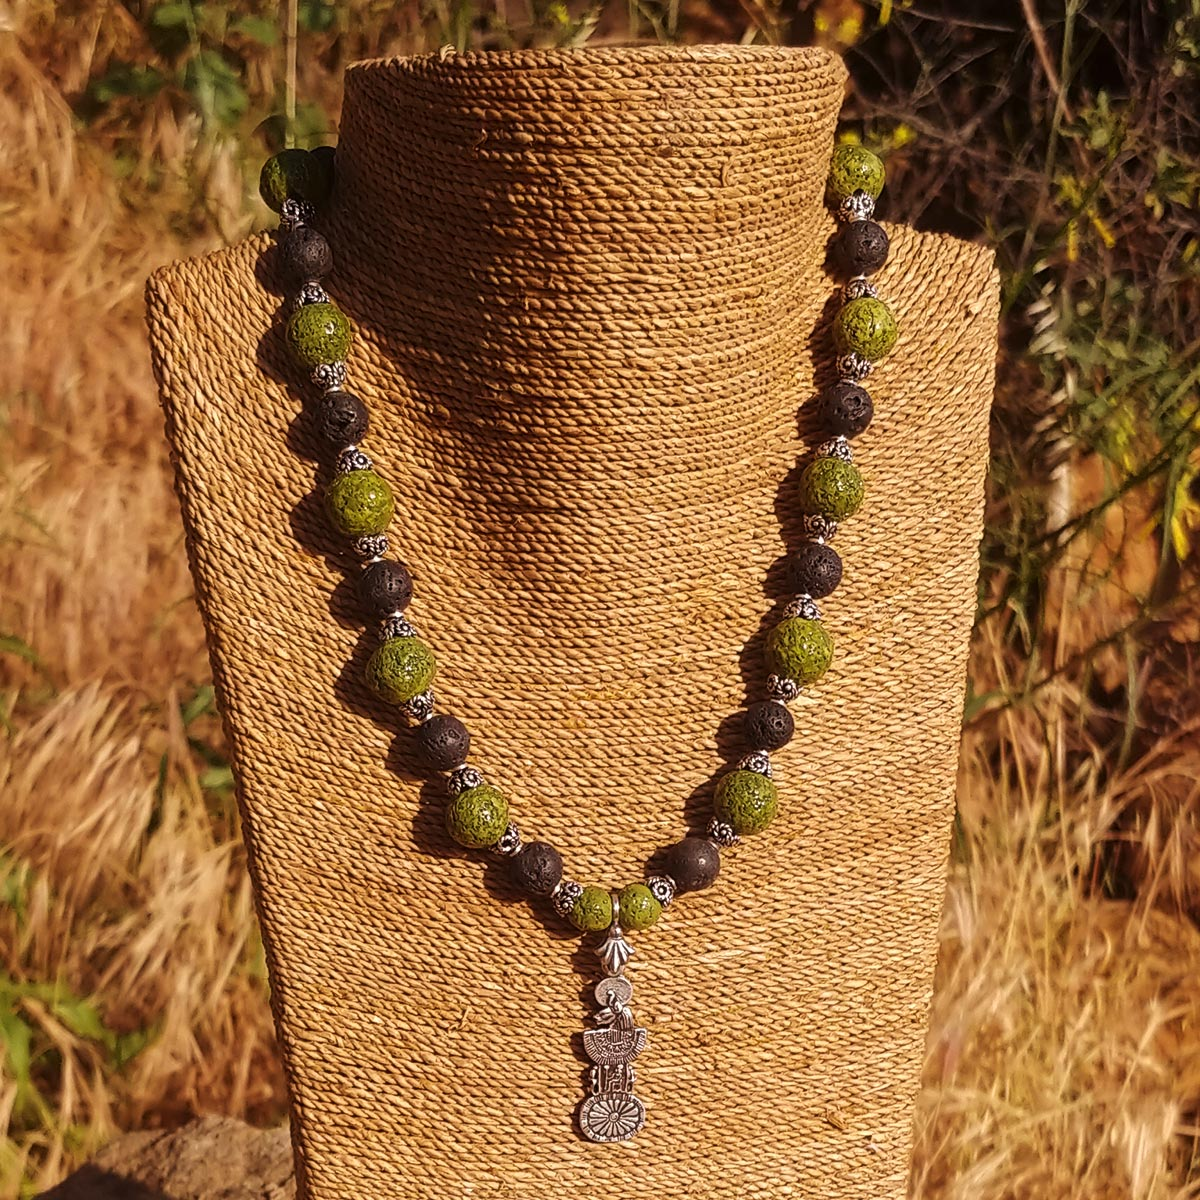 Men's Necklace in Nile Green Faience and Matte Black Lava - Em Hotep Collection